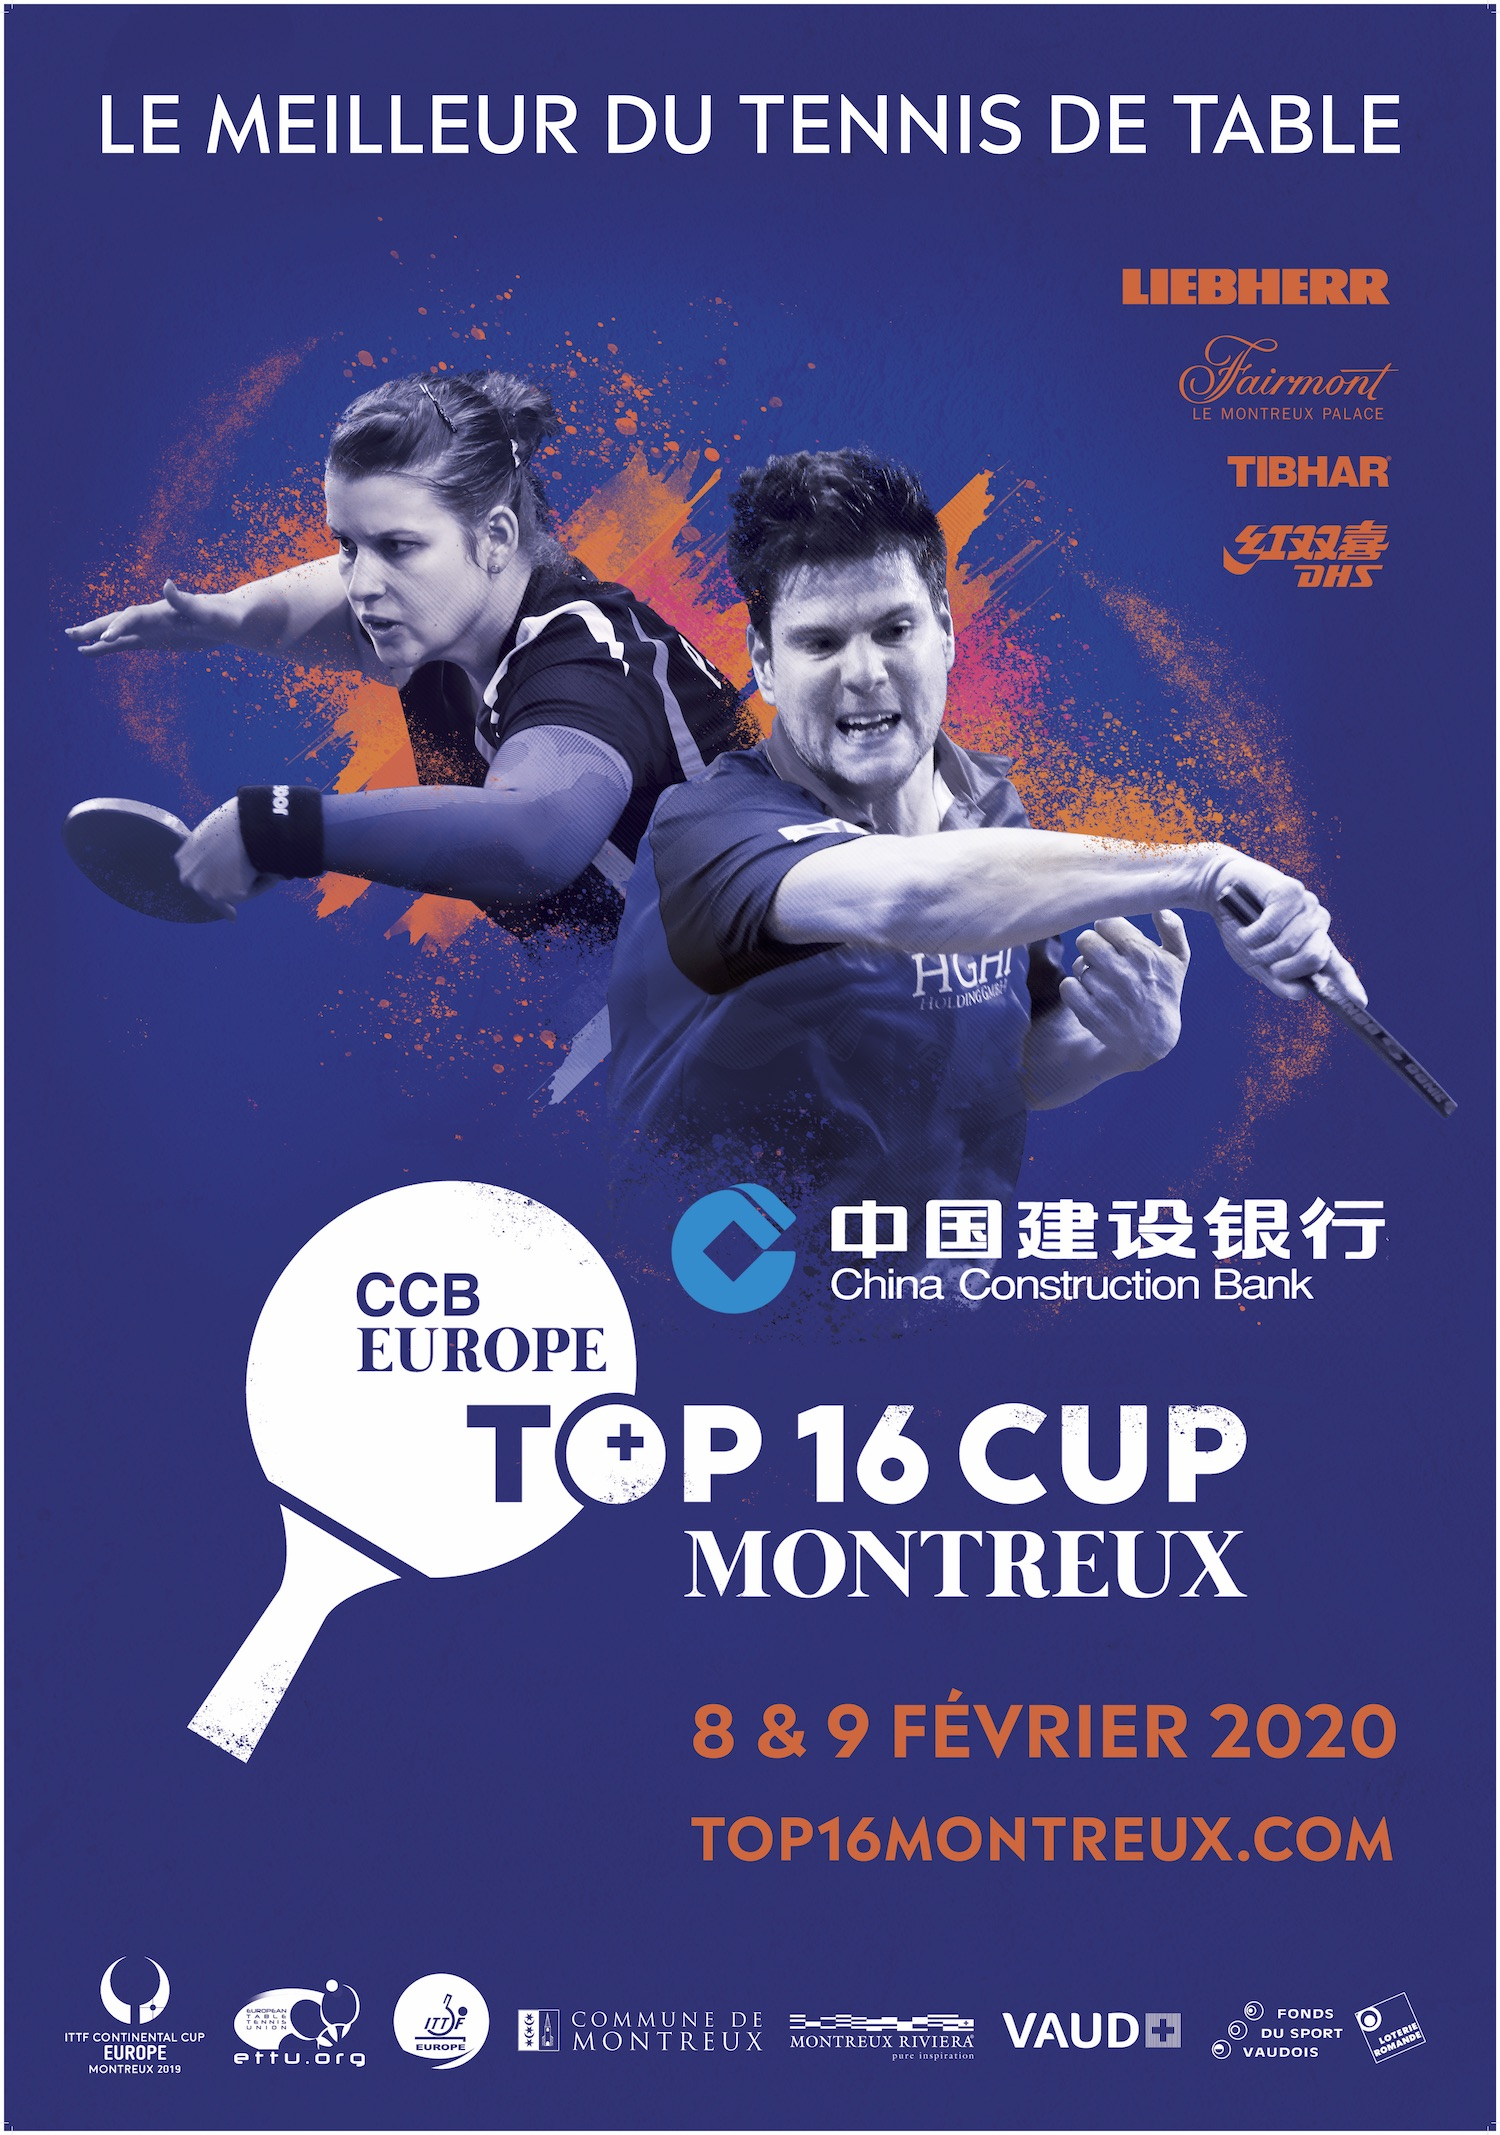 Top16 Montreux 2020